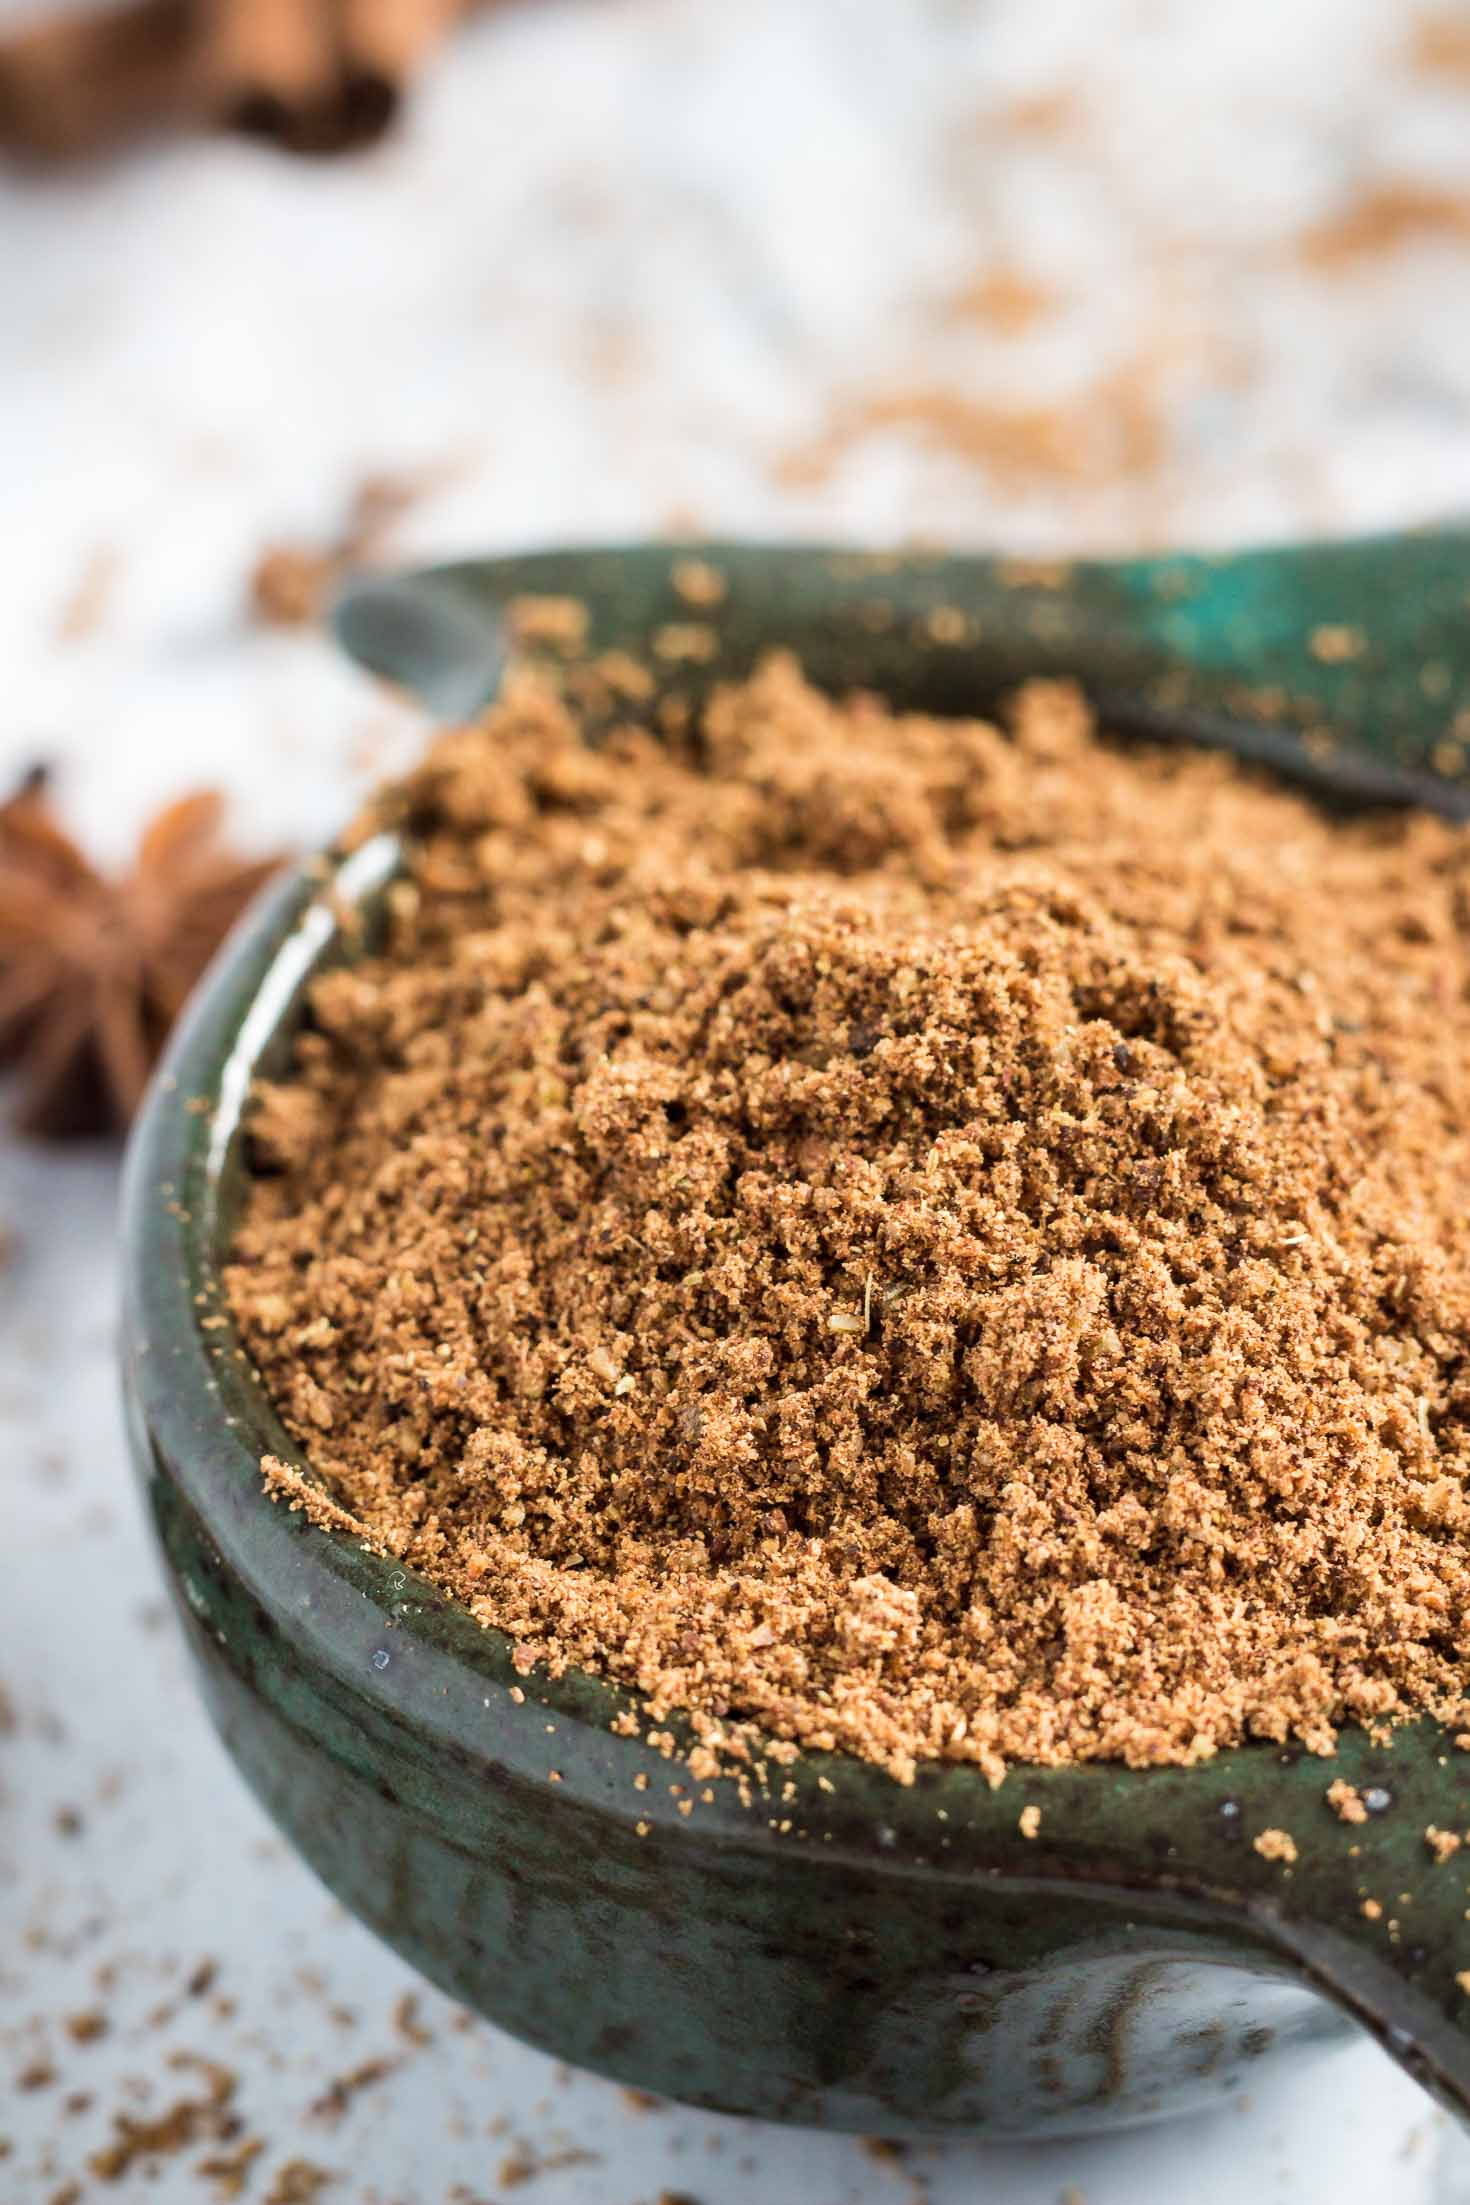 Chinese 5-spice powder-closeup view